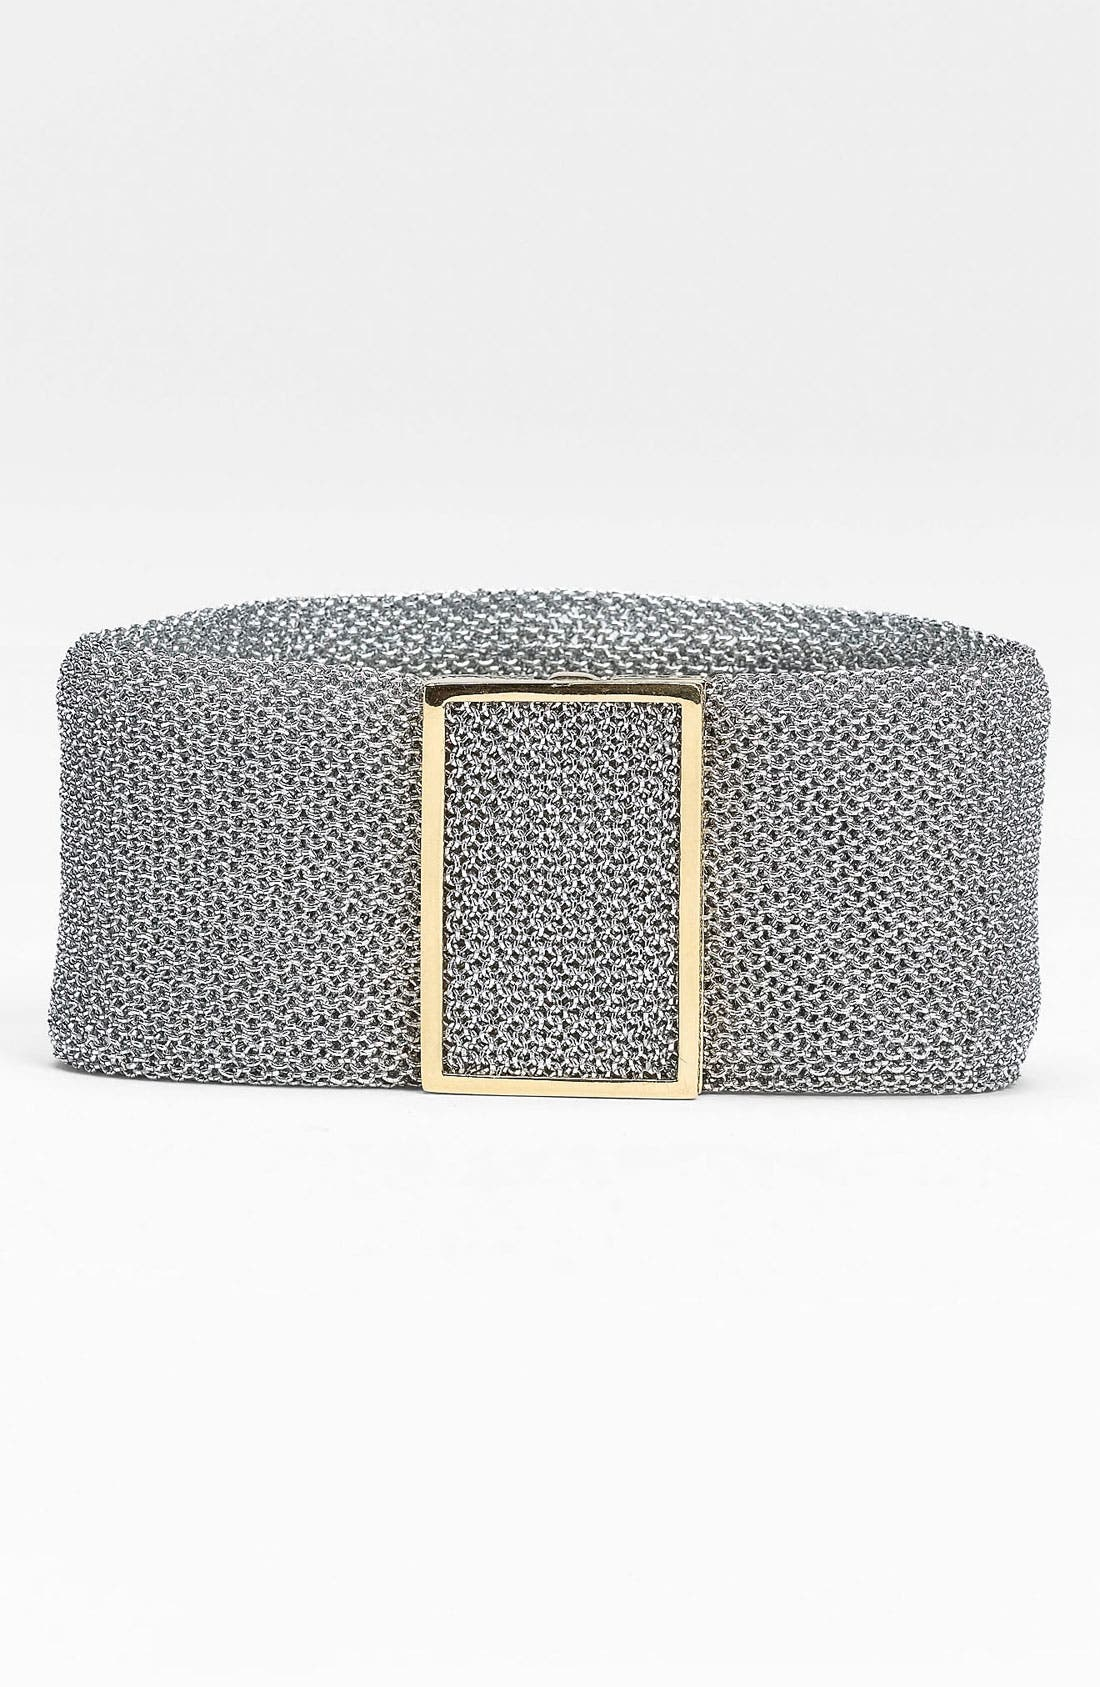 Alternate Image 1 Selected - Adami & Martucci 'Mesh' Bracelet (Nordstrom Exclusive)